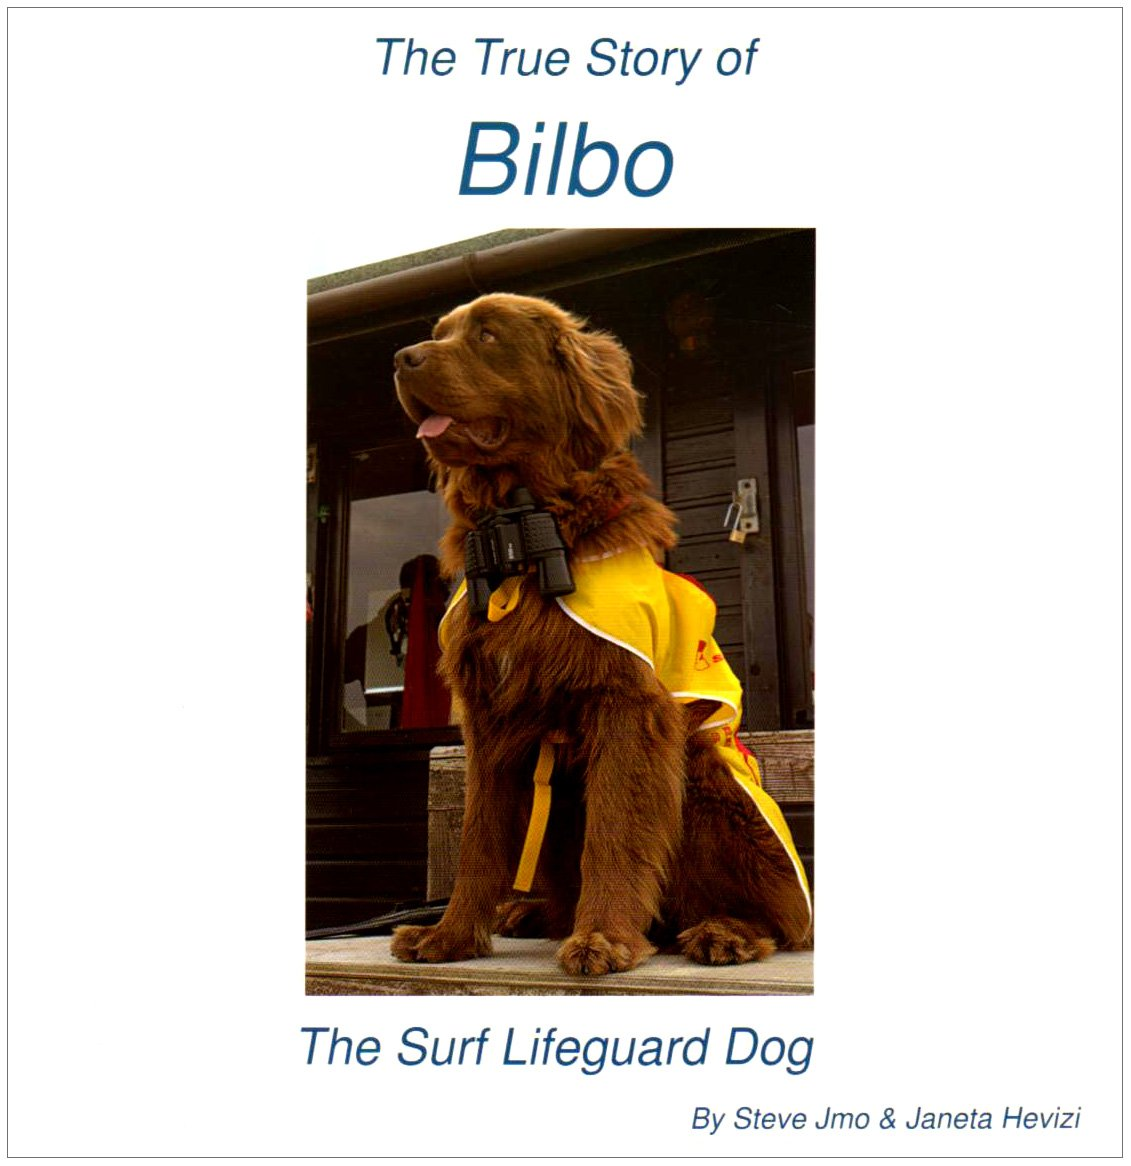 The True Story of Bilbo the Surf Lifeguard Dog (Bilbo the Lifeguard Dog)